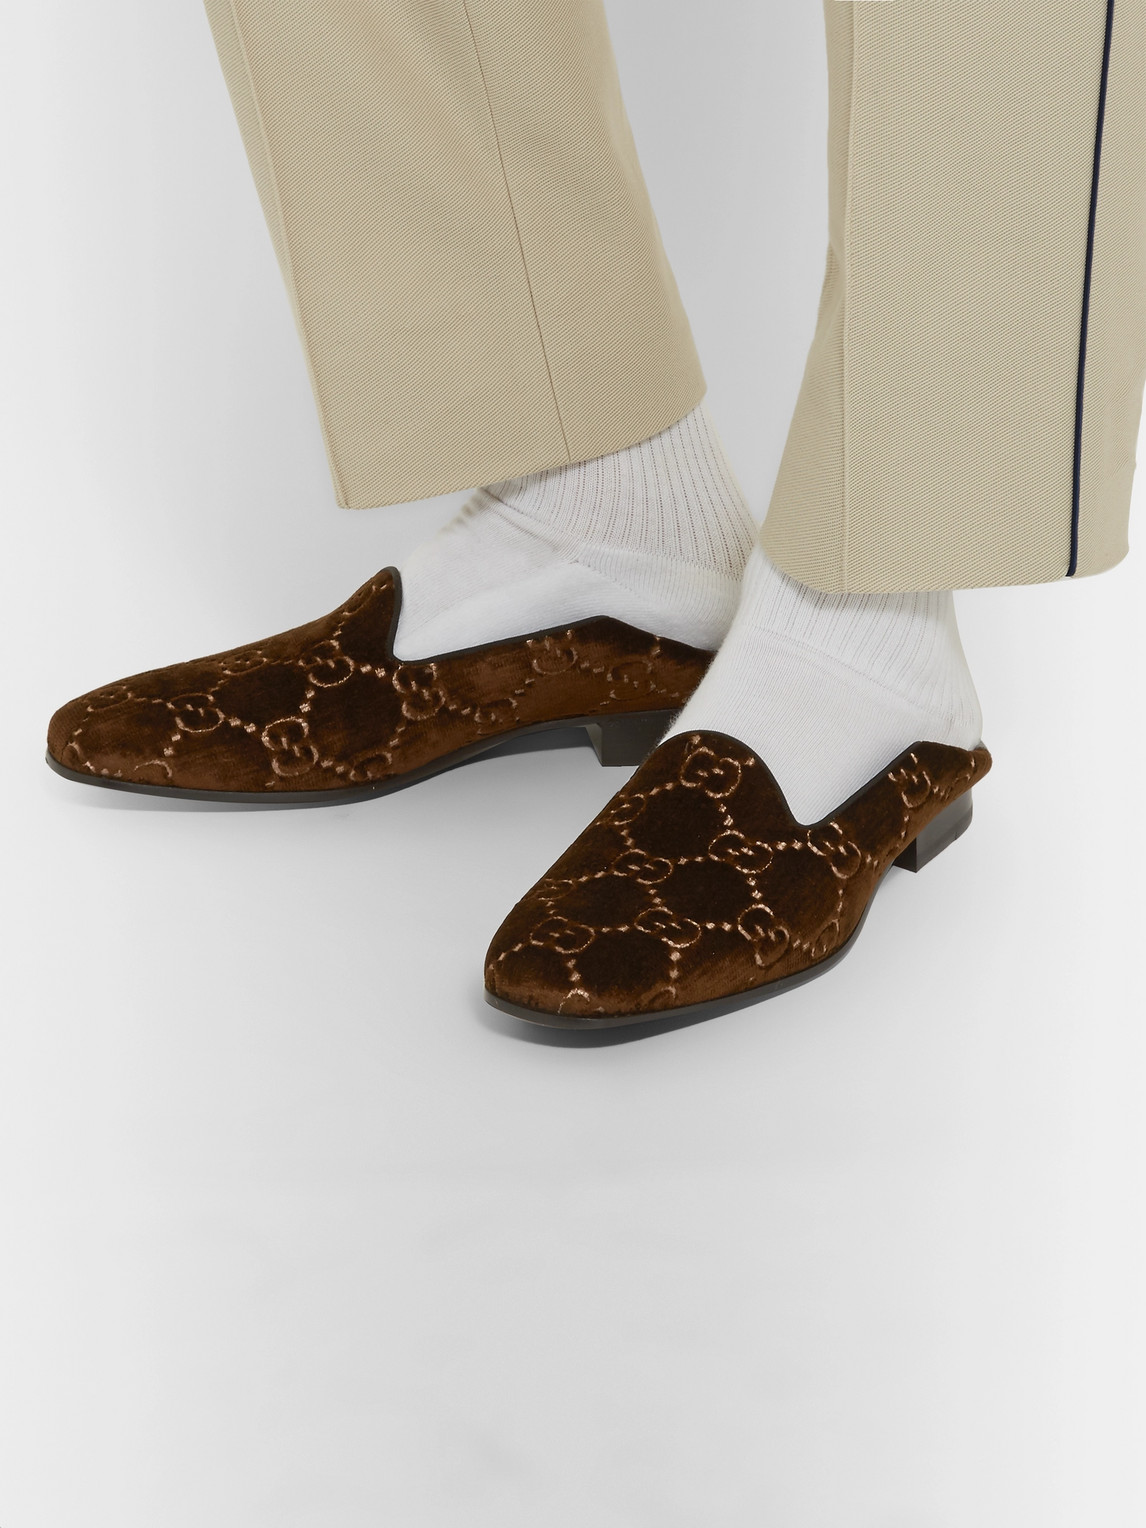 Gucci Loafers GALLIPOLI COLLAPSIBLE-HEEL LEATHER-TRIMMED EMBROIDERED VELVET LOAFERS